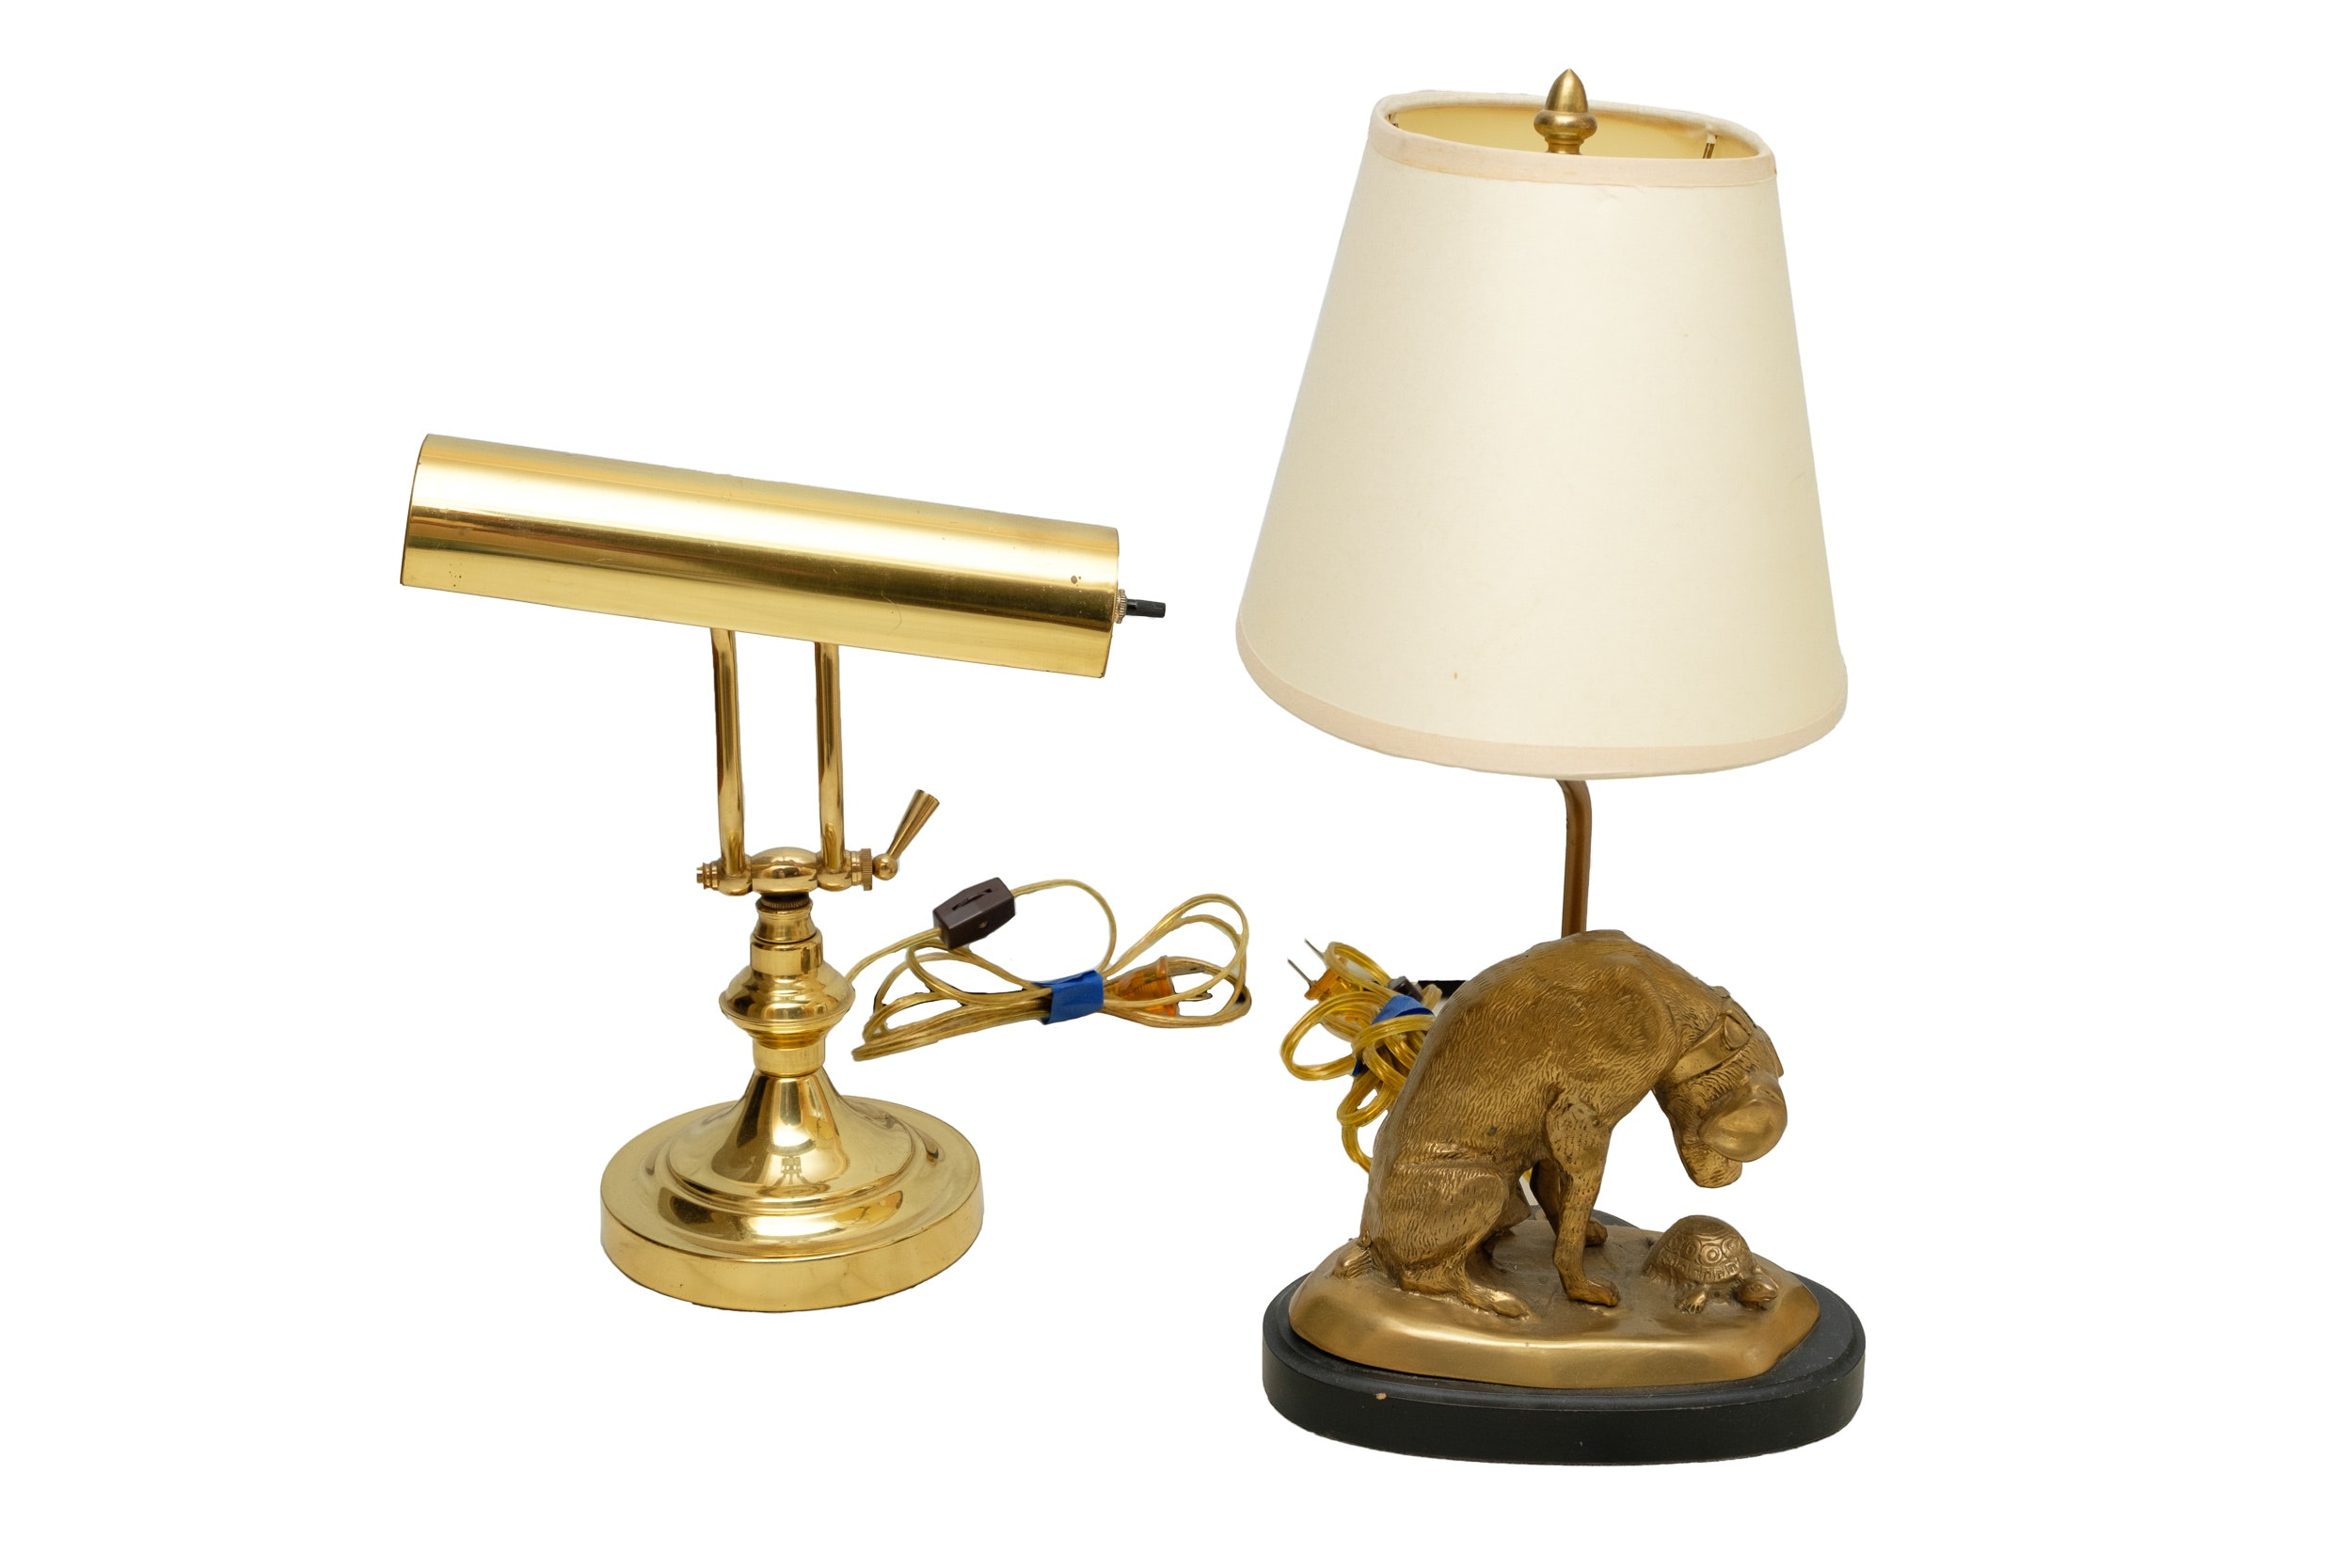 Vintage Brass Piano Lamp and Brass Dog and Tortoise Figural Lamp